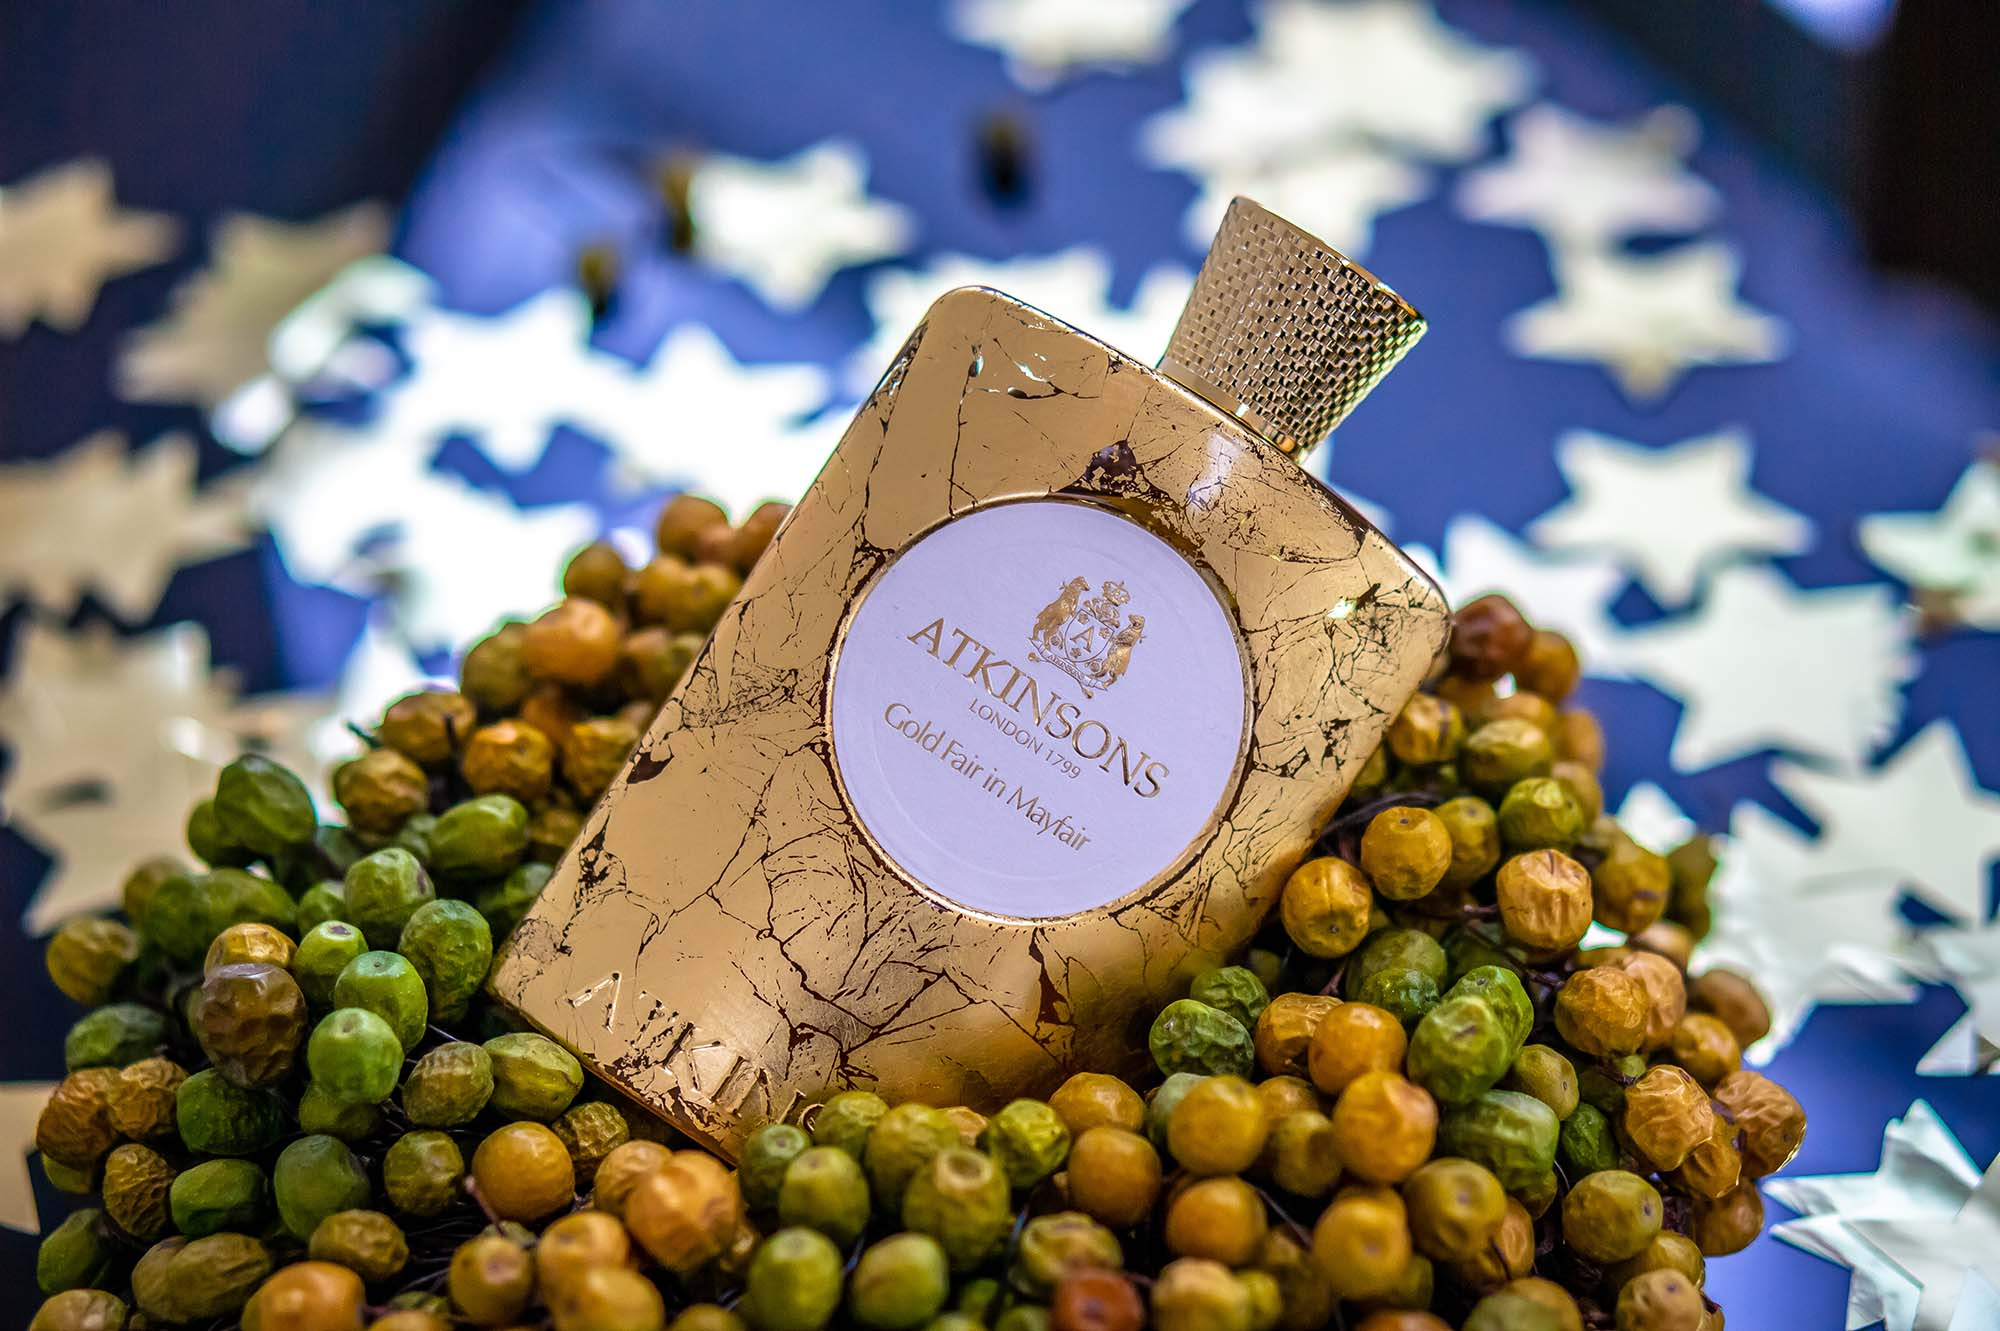 Atkinsons Gold Fair in Mayfair perfume niche fragrance Duft Parfüm парфюм